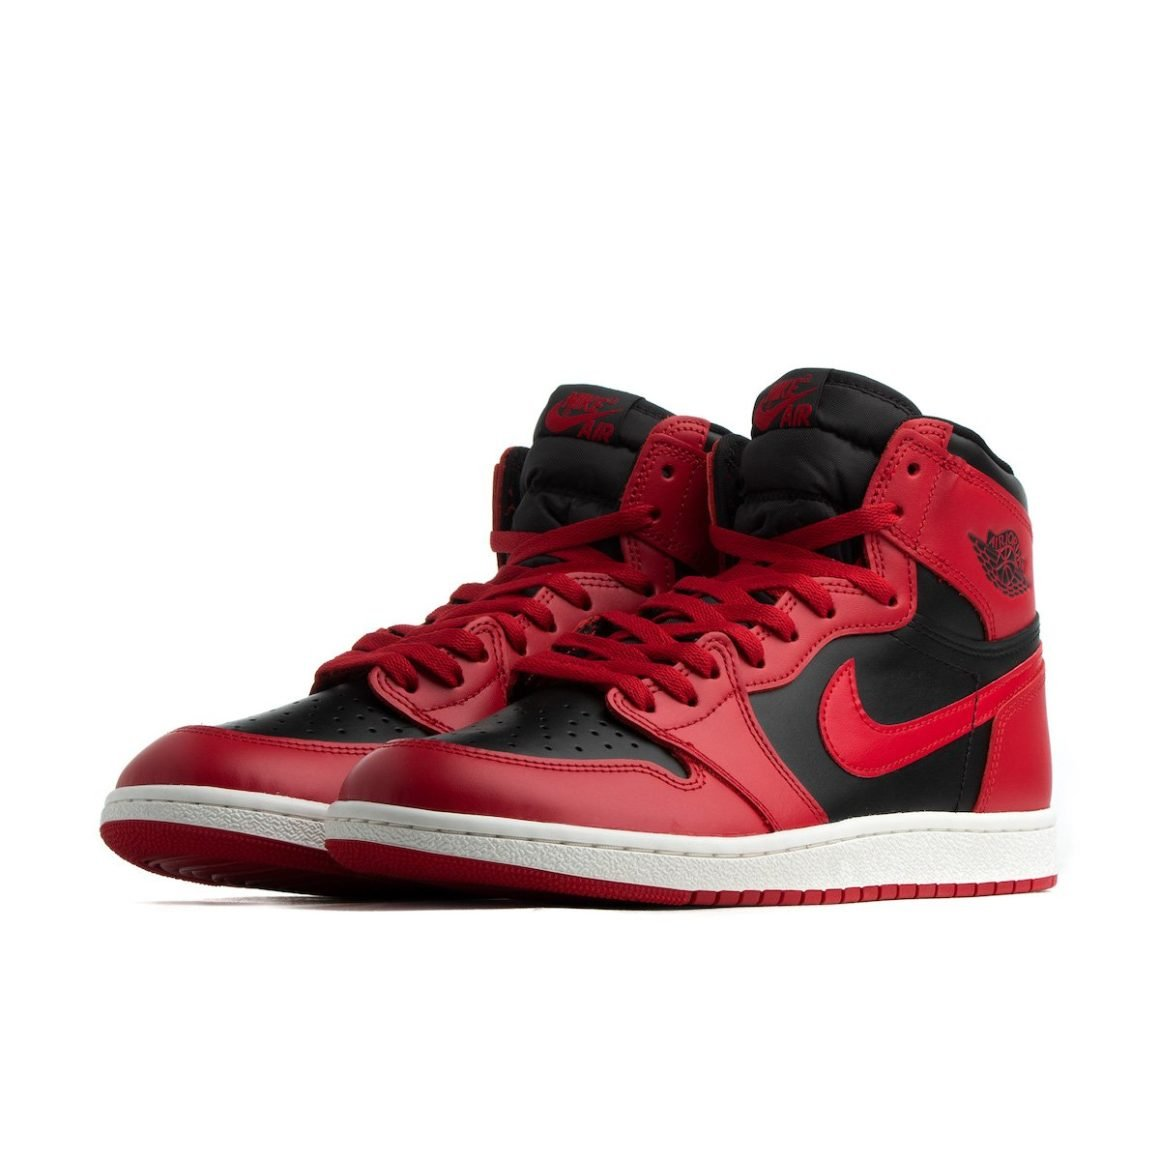 AIR JORDAN I HI '85 VARSITY RED BQ4422-600